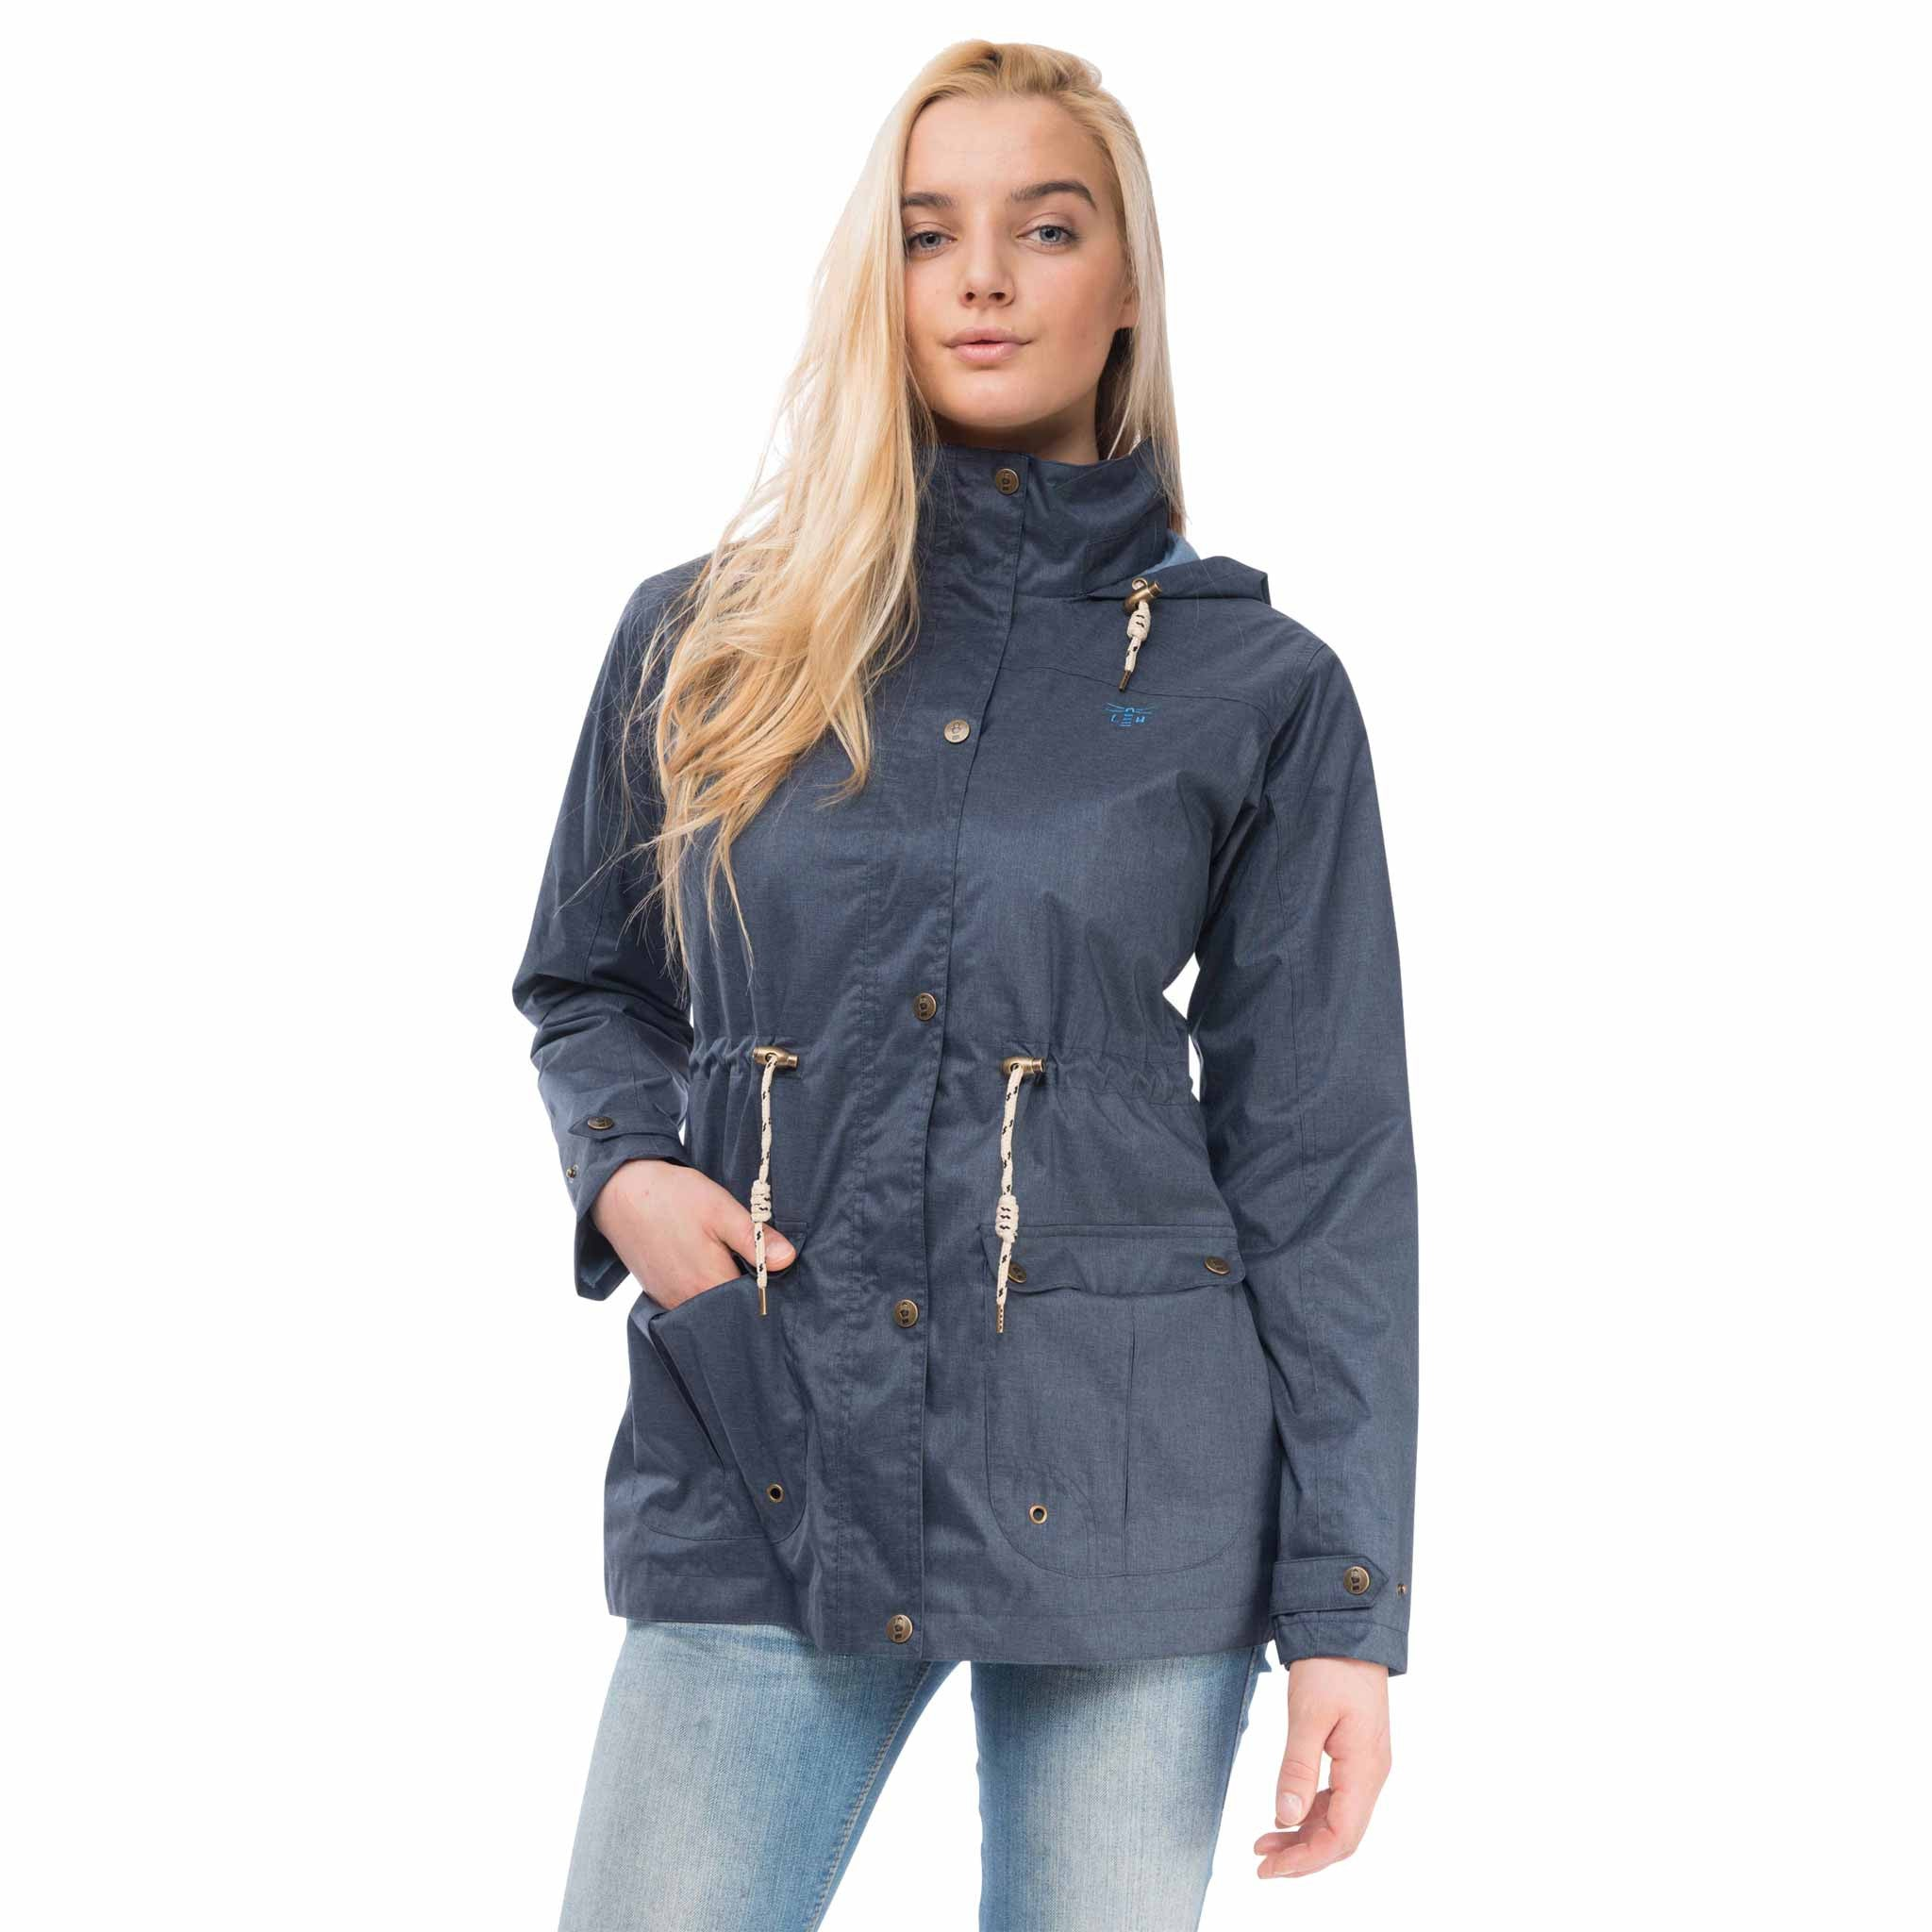 Isla Womens Waterproof Jacket in French Navy, Modelled Front View | Lighthouse